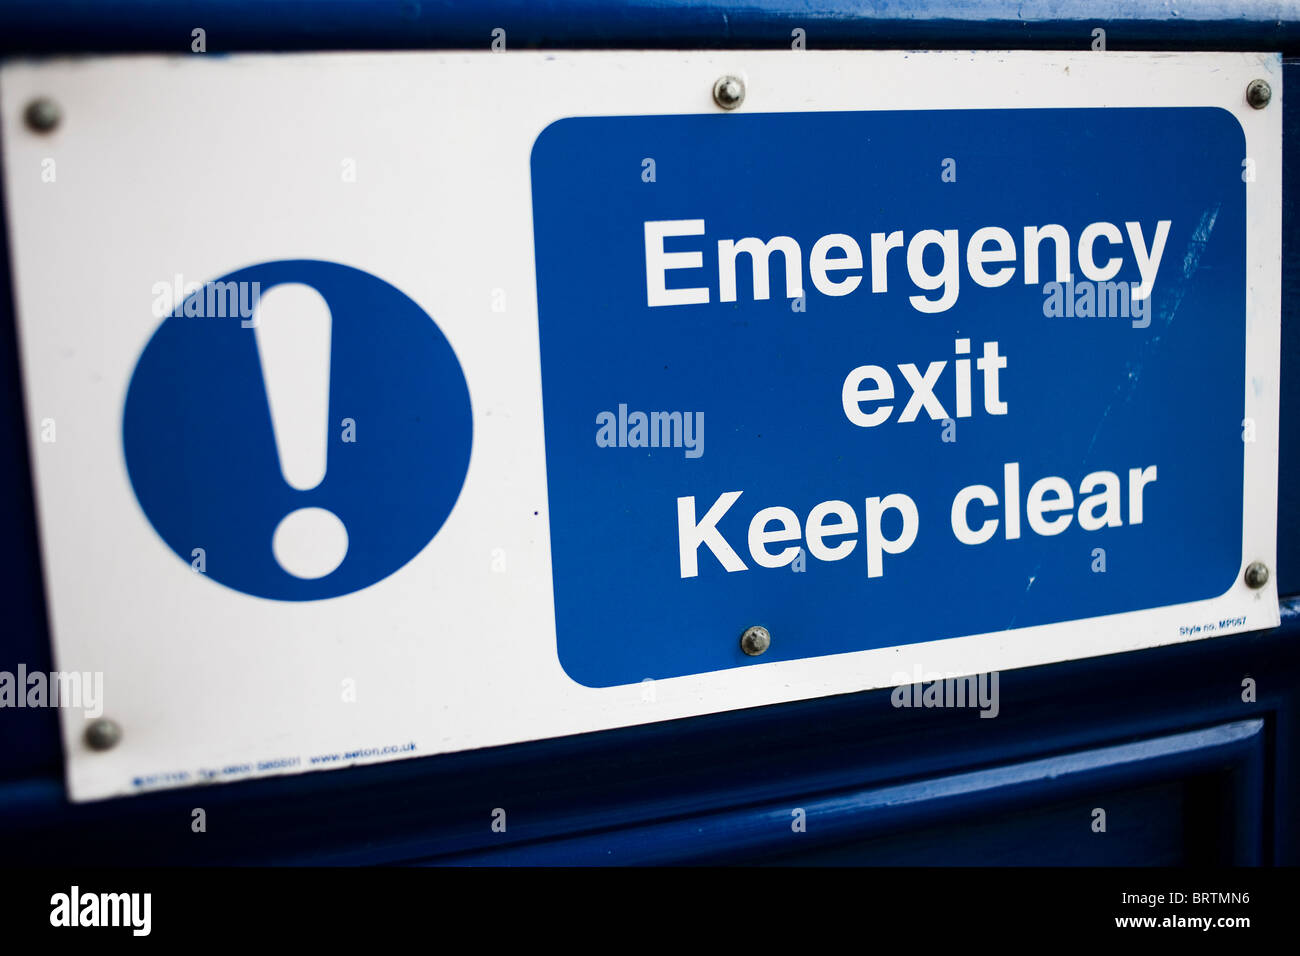 Emergency Exit Keep Clear door sign. - Stock Image